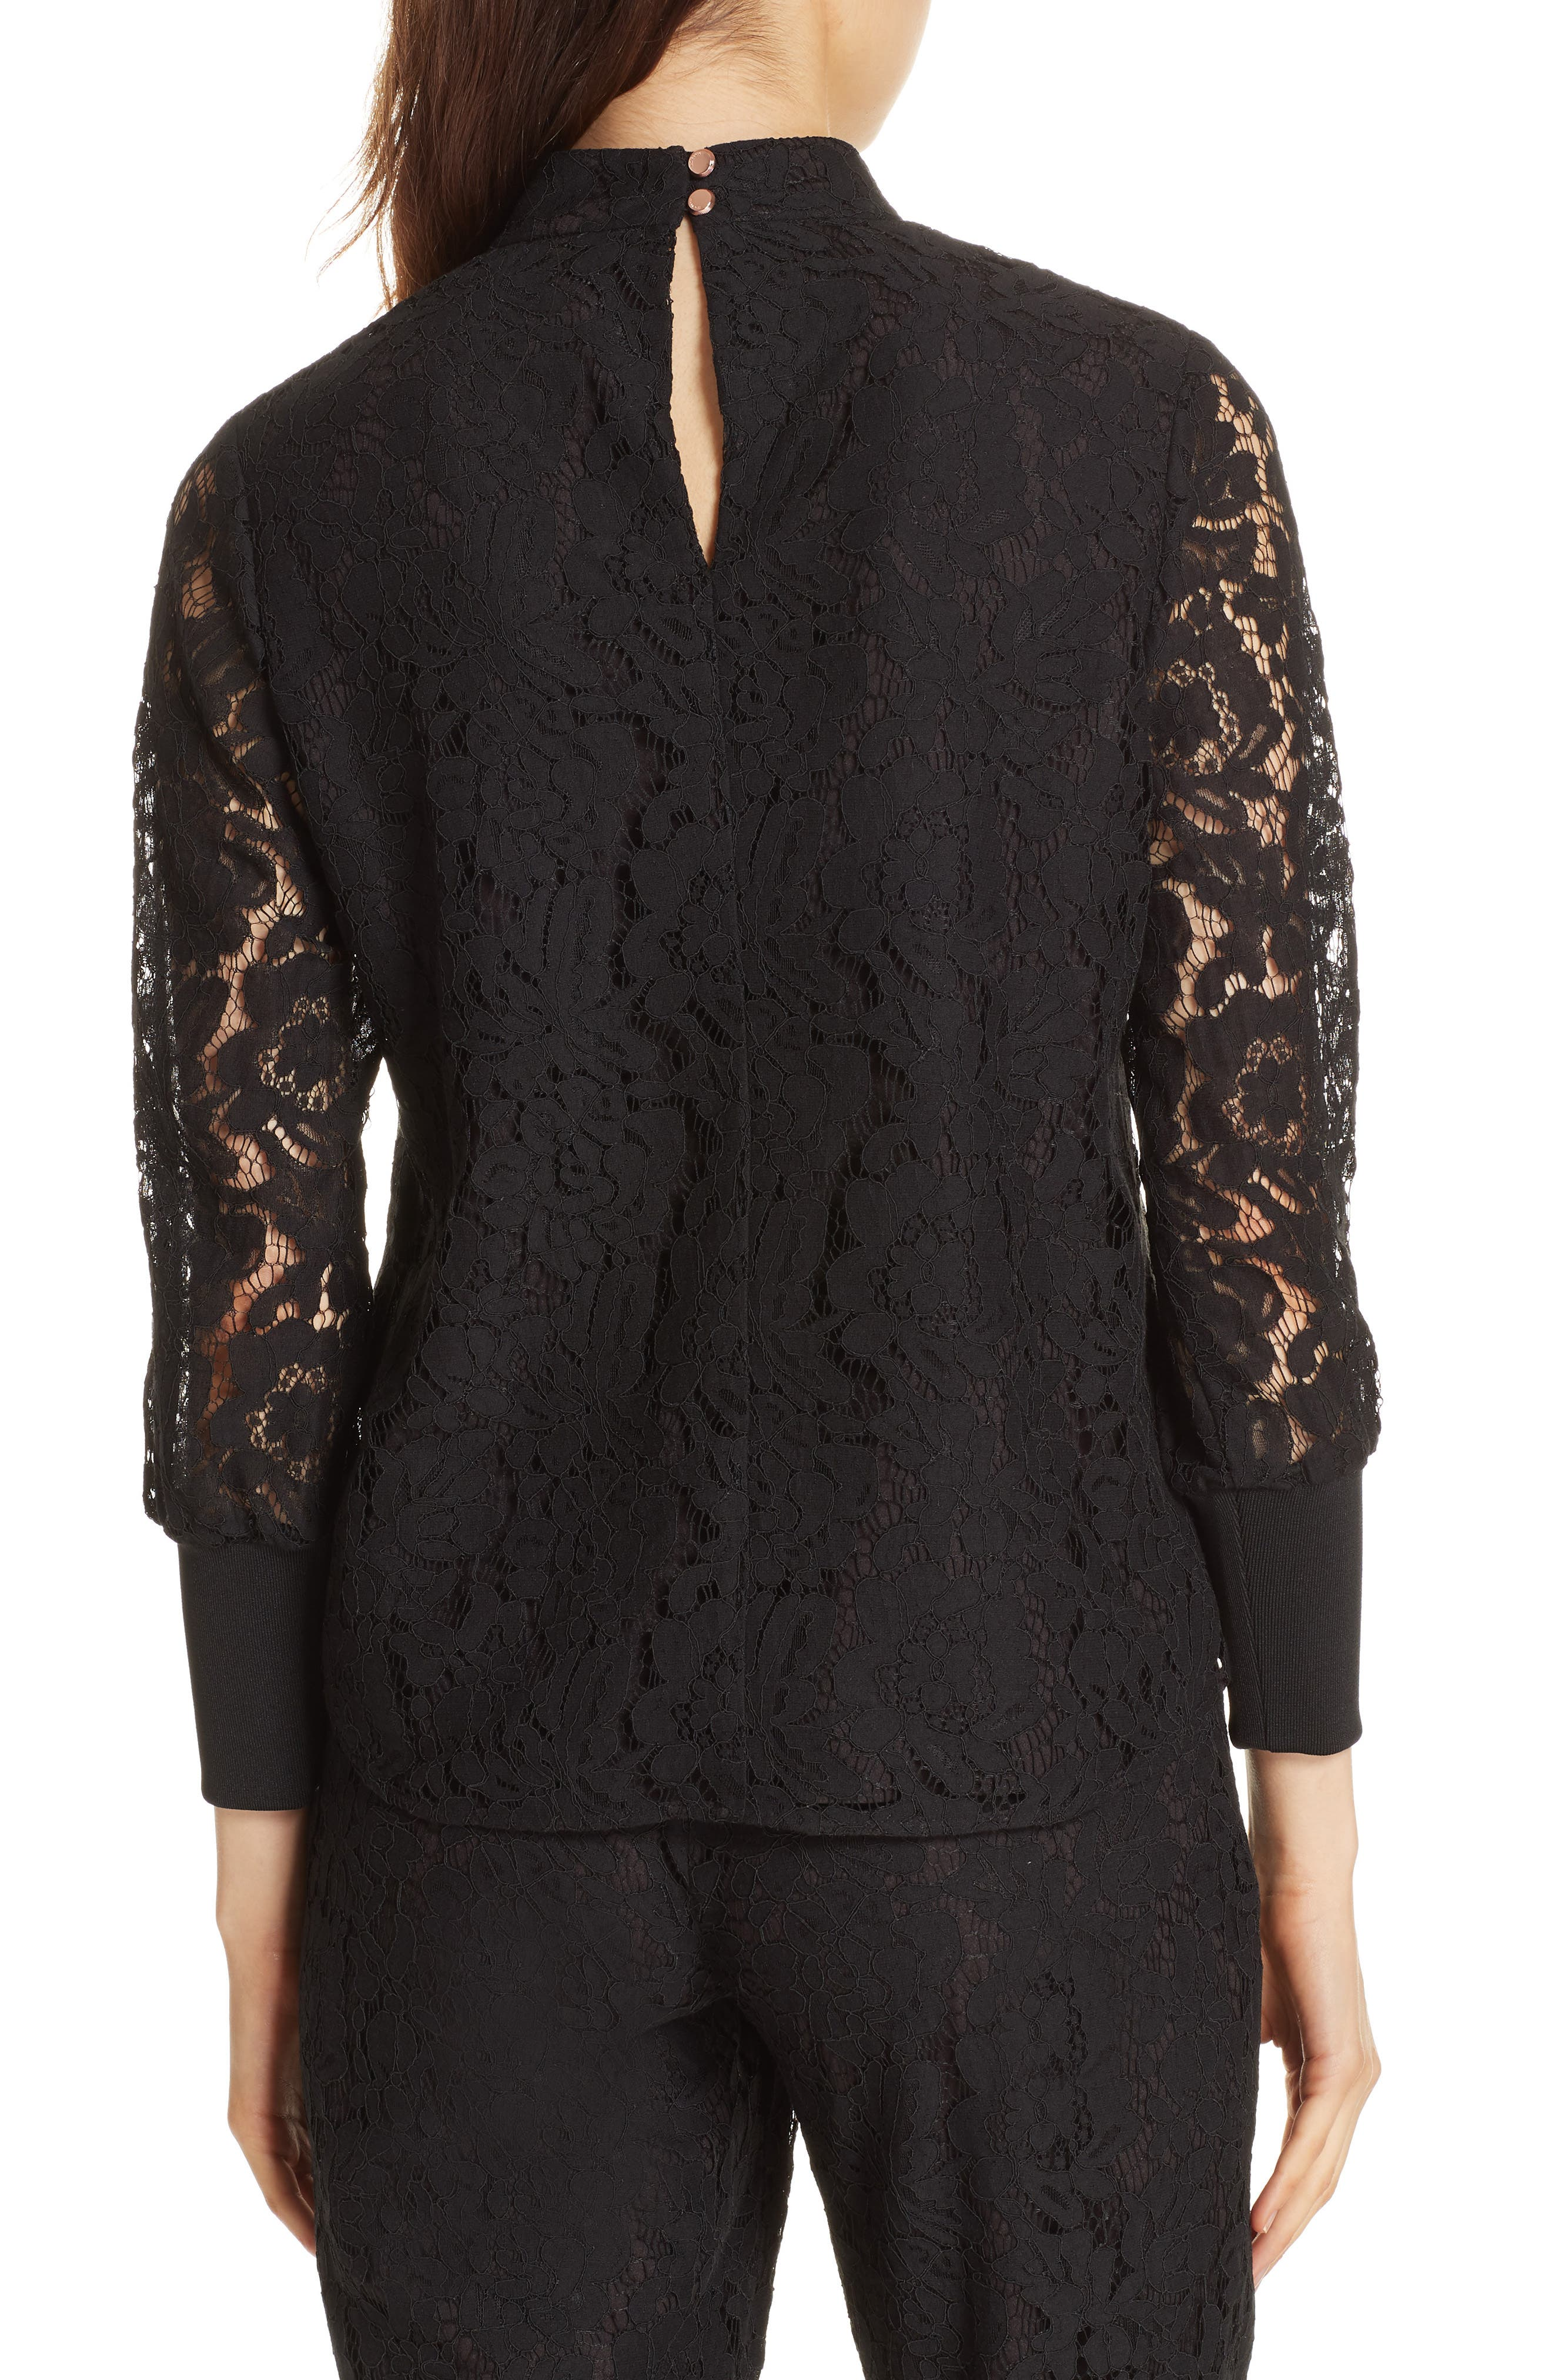 Dilly Lace High Neck Blouse,                             Alternate thumbnail 2, color,                             BLACK